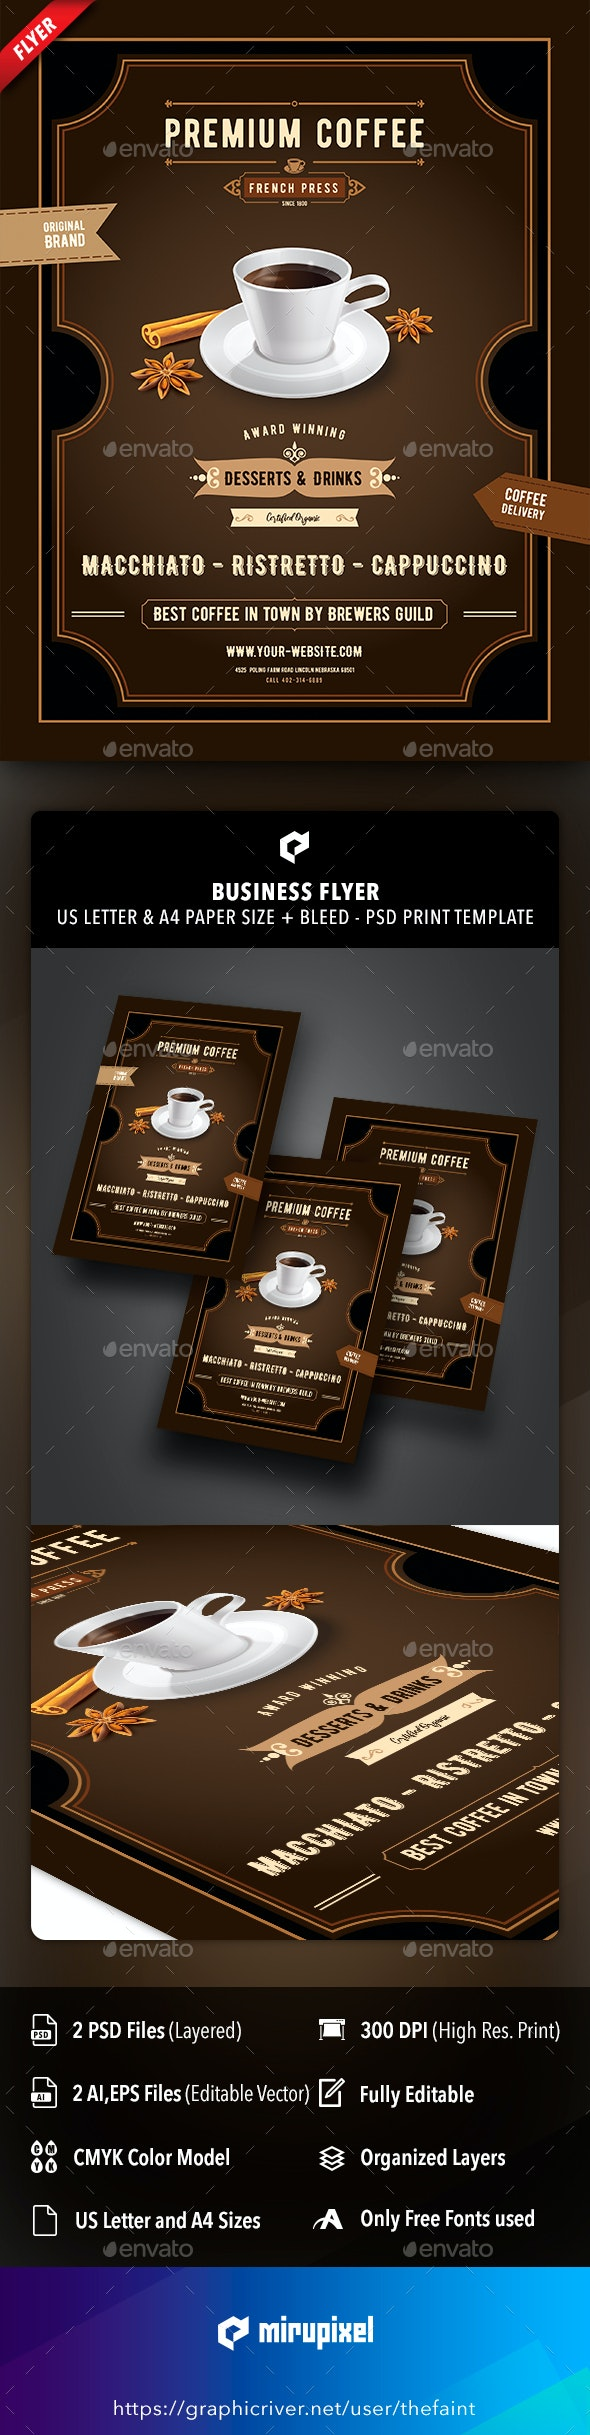 Coffee and Spice Business Flyer - Commerce Flyers